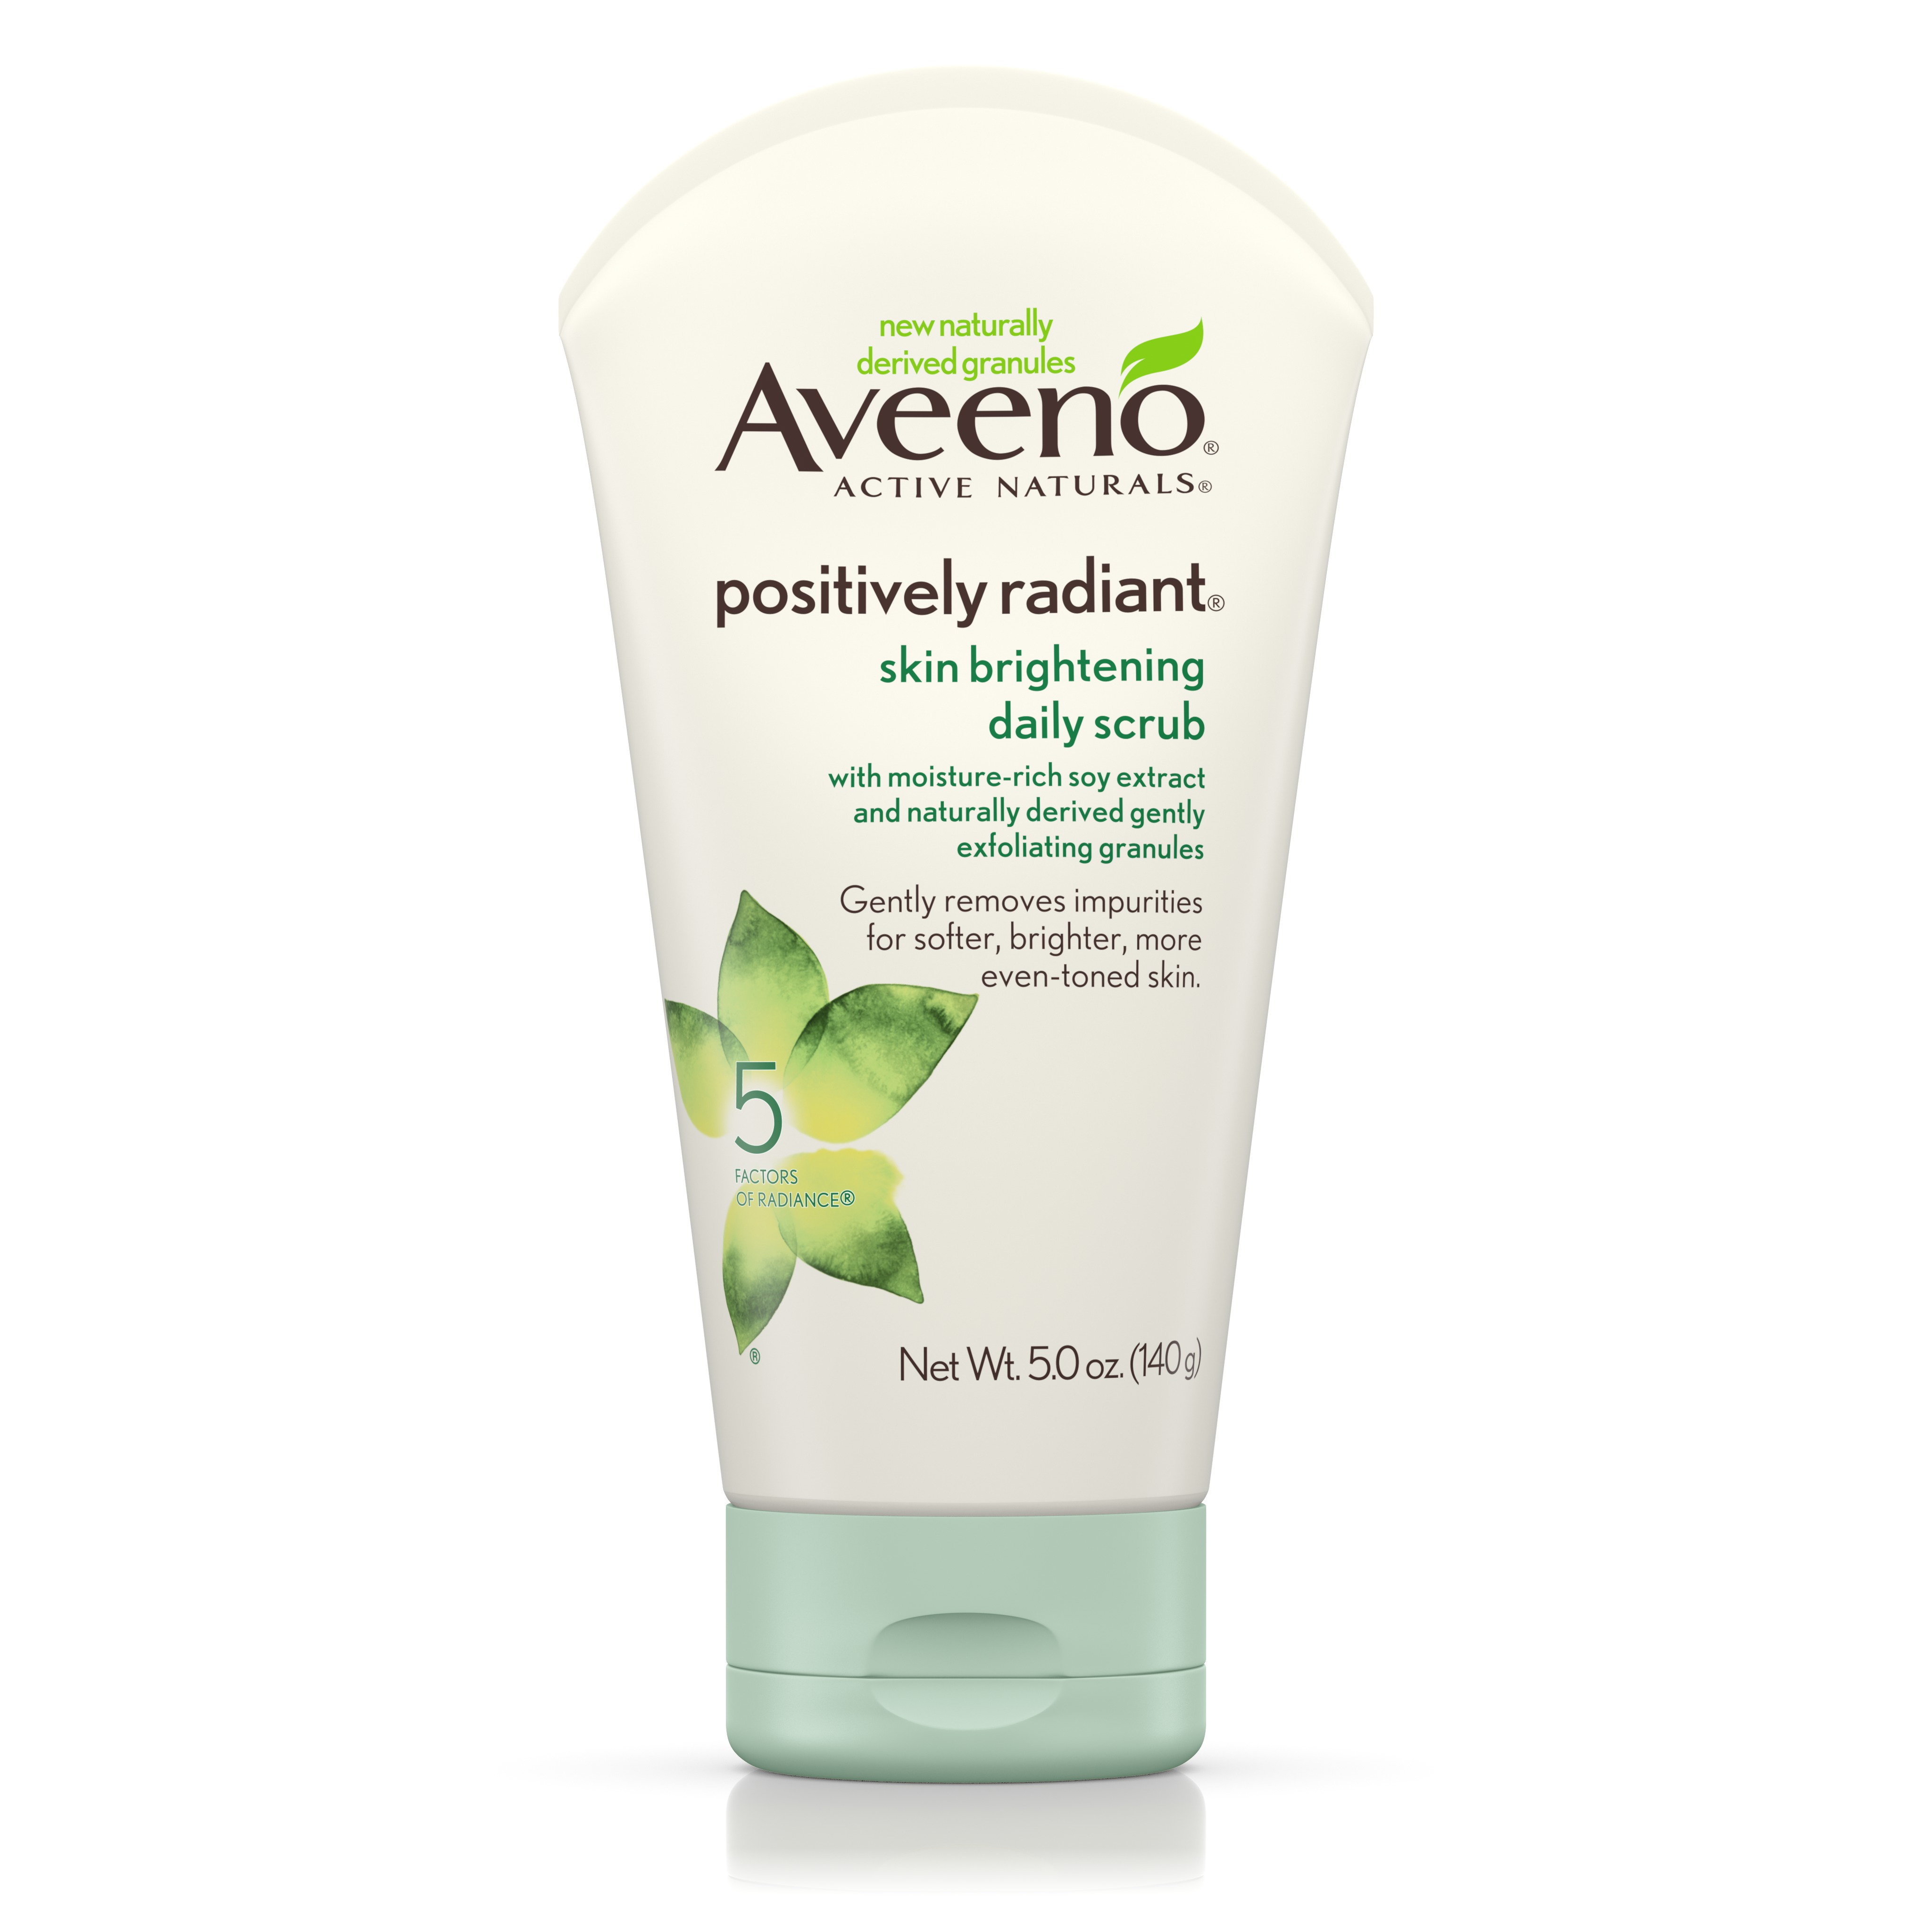 Aveeno Positively Radiant Skin Brightening Exfoliating Daily Scrub 5Oz - Walmart.com